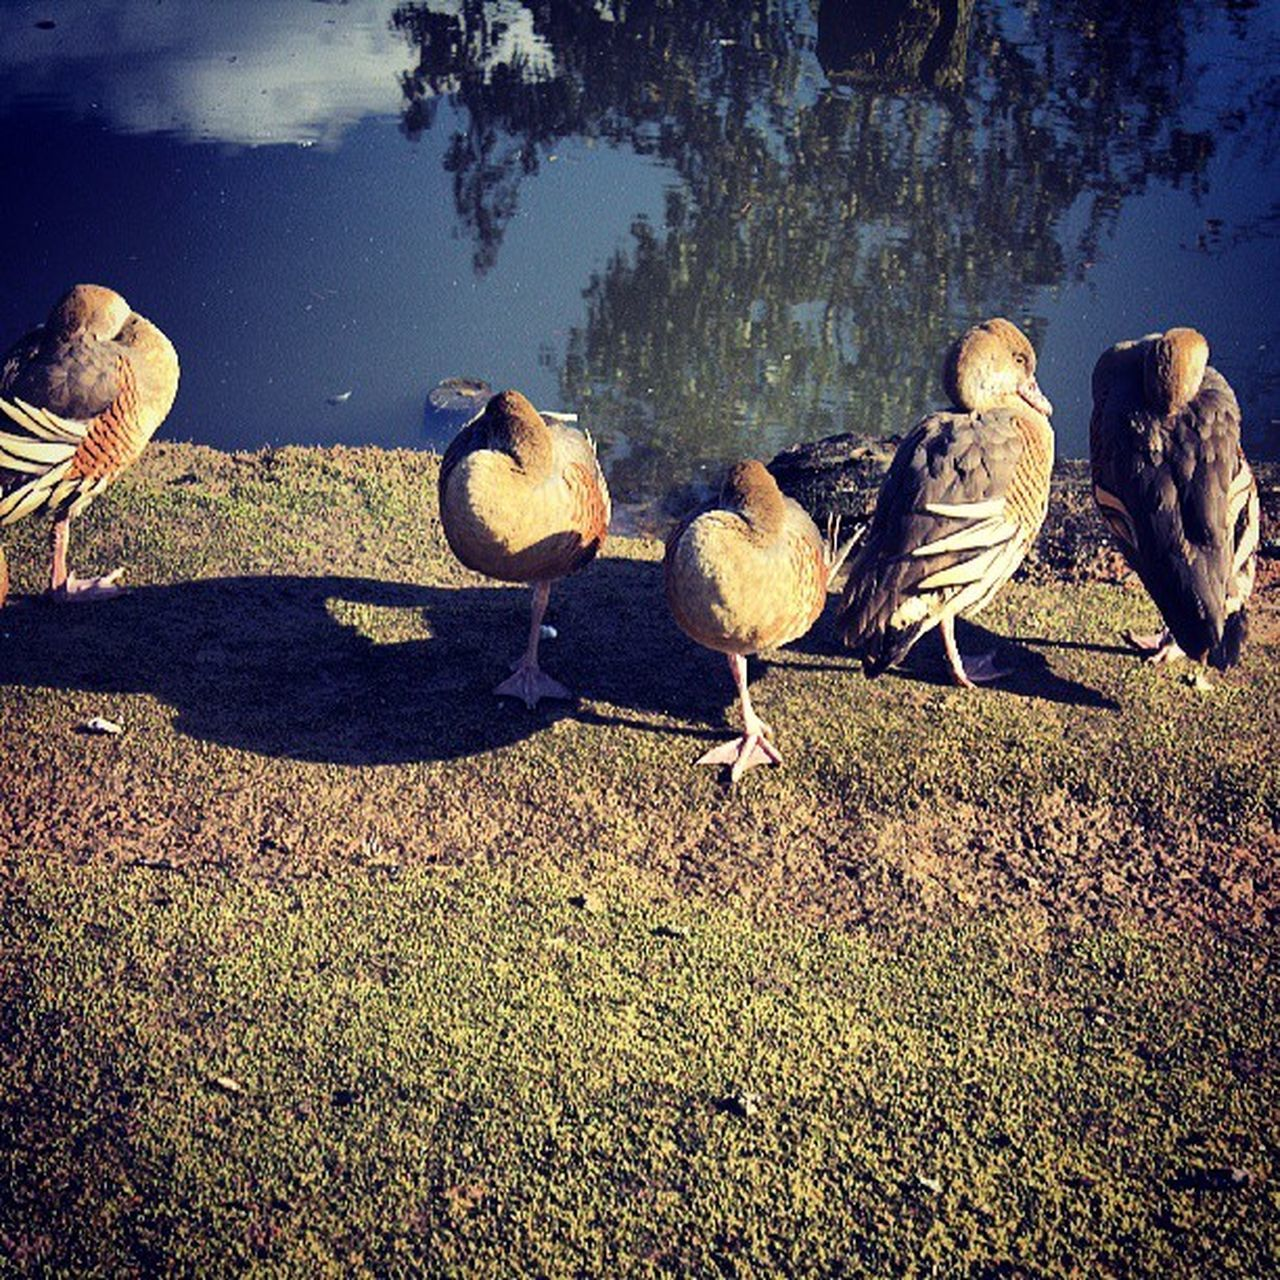 animals in the wild, animal themes, bird, animal wildlife, nature, water, lake, no people, outdoors, day, sunlight, large group of animals, perching